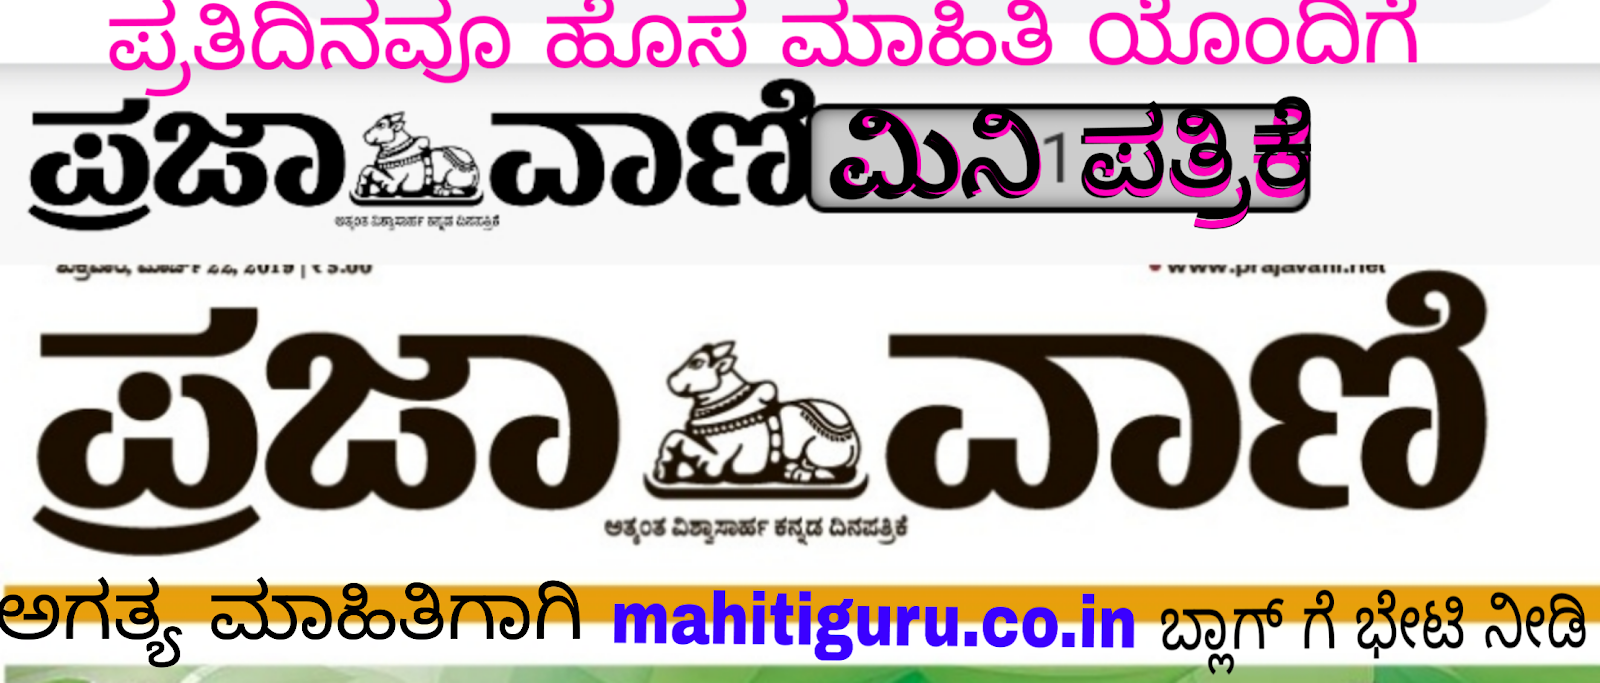 28-02-2020 Today mini prajavani